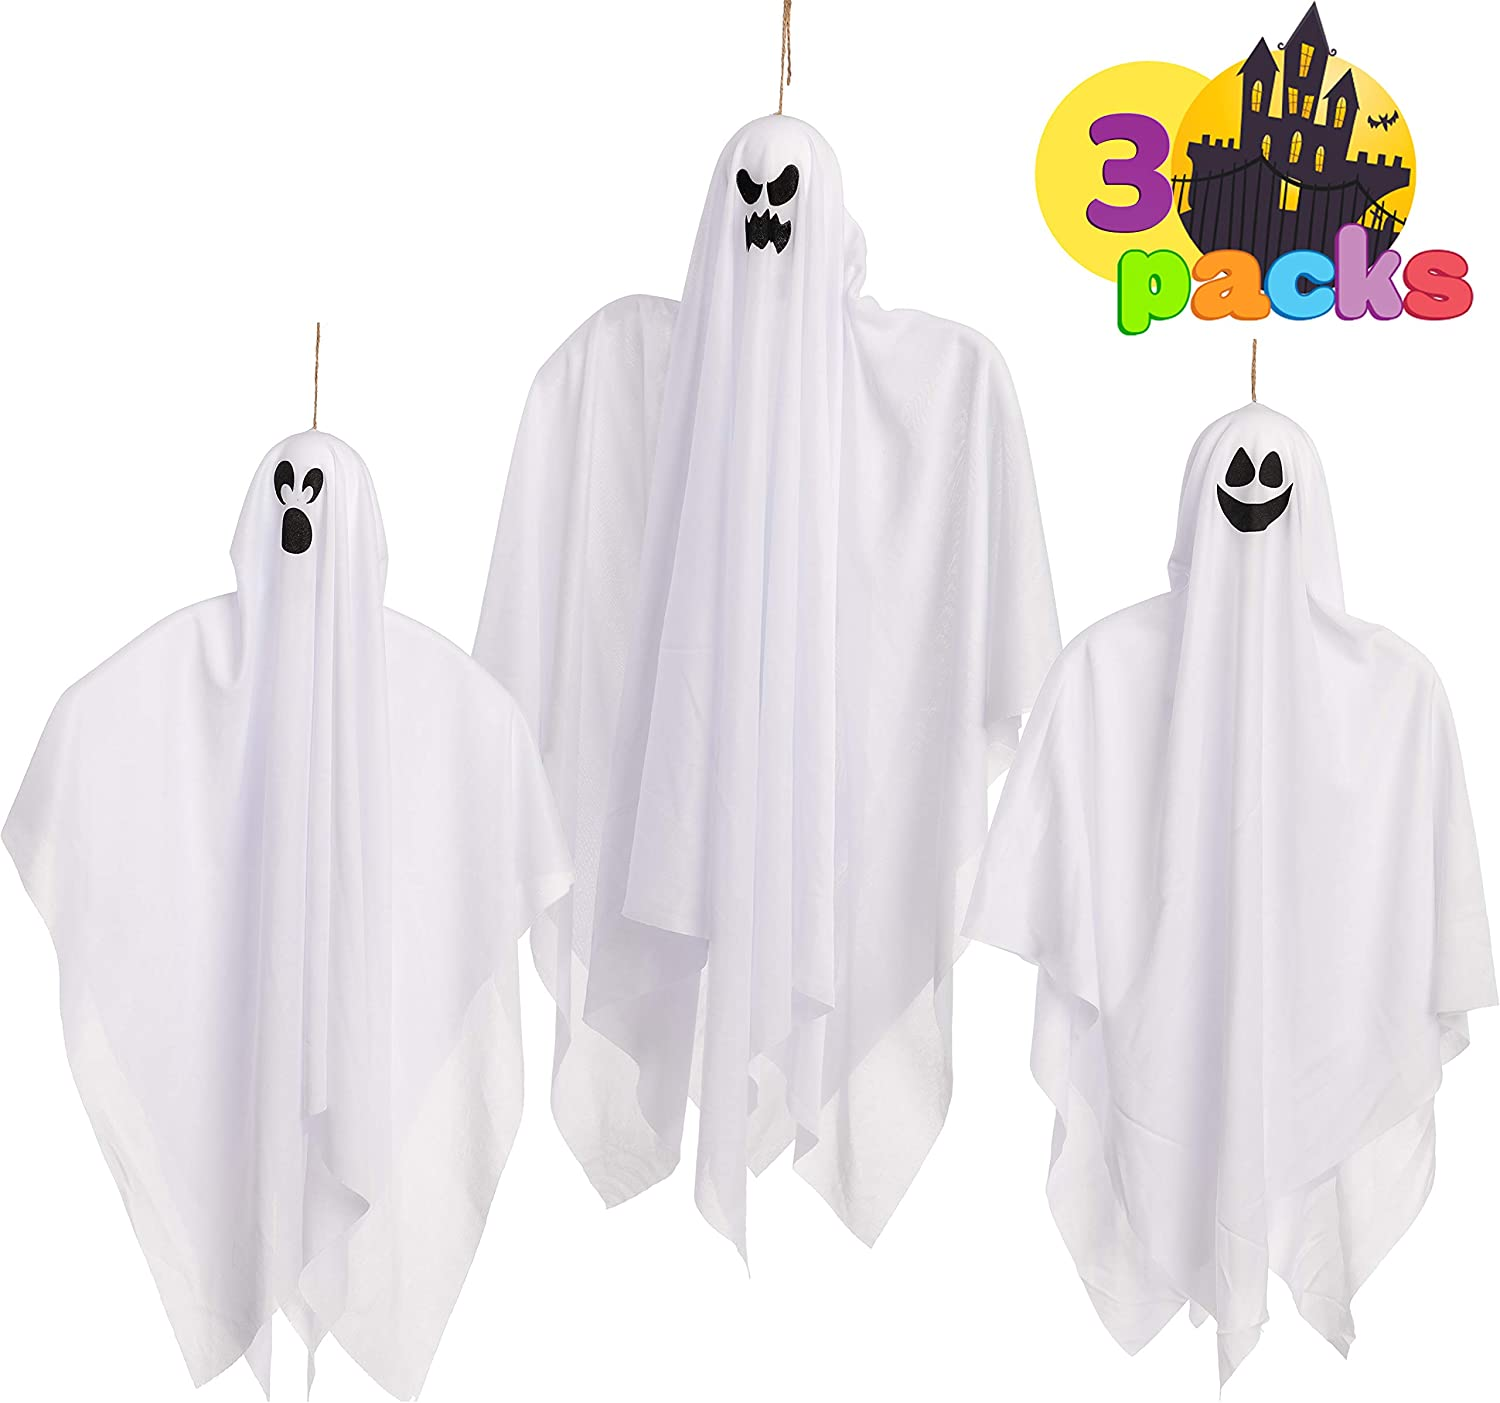 Halloween Hanging Ghosts Glow in the Dark(3 Pack, Mix Size) for Halloween Party Decoration, Cute Flying Ghost for Front Yard Patio Lawn Garden Party Décor and Holiday Halloween Hanging Decorations